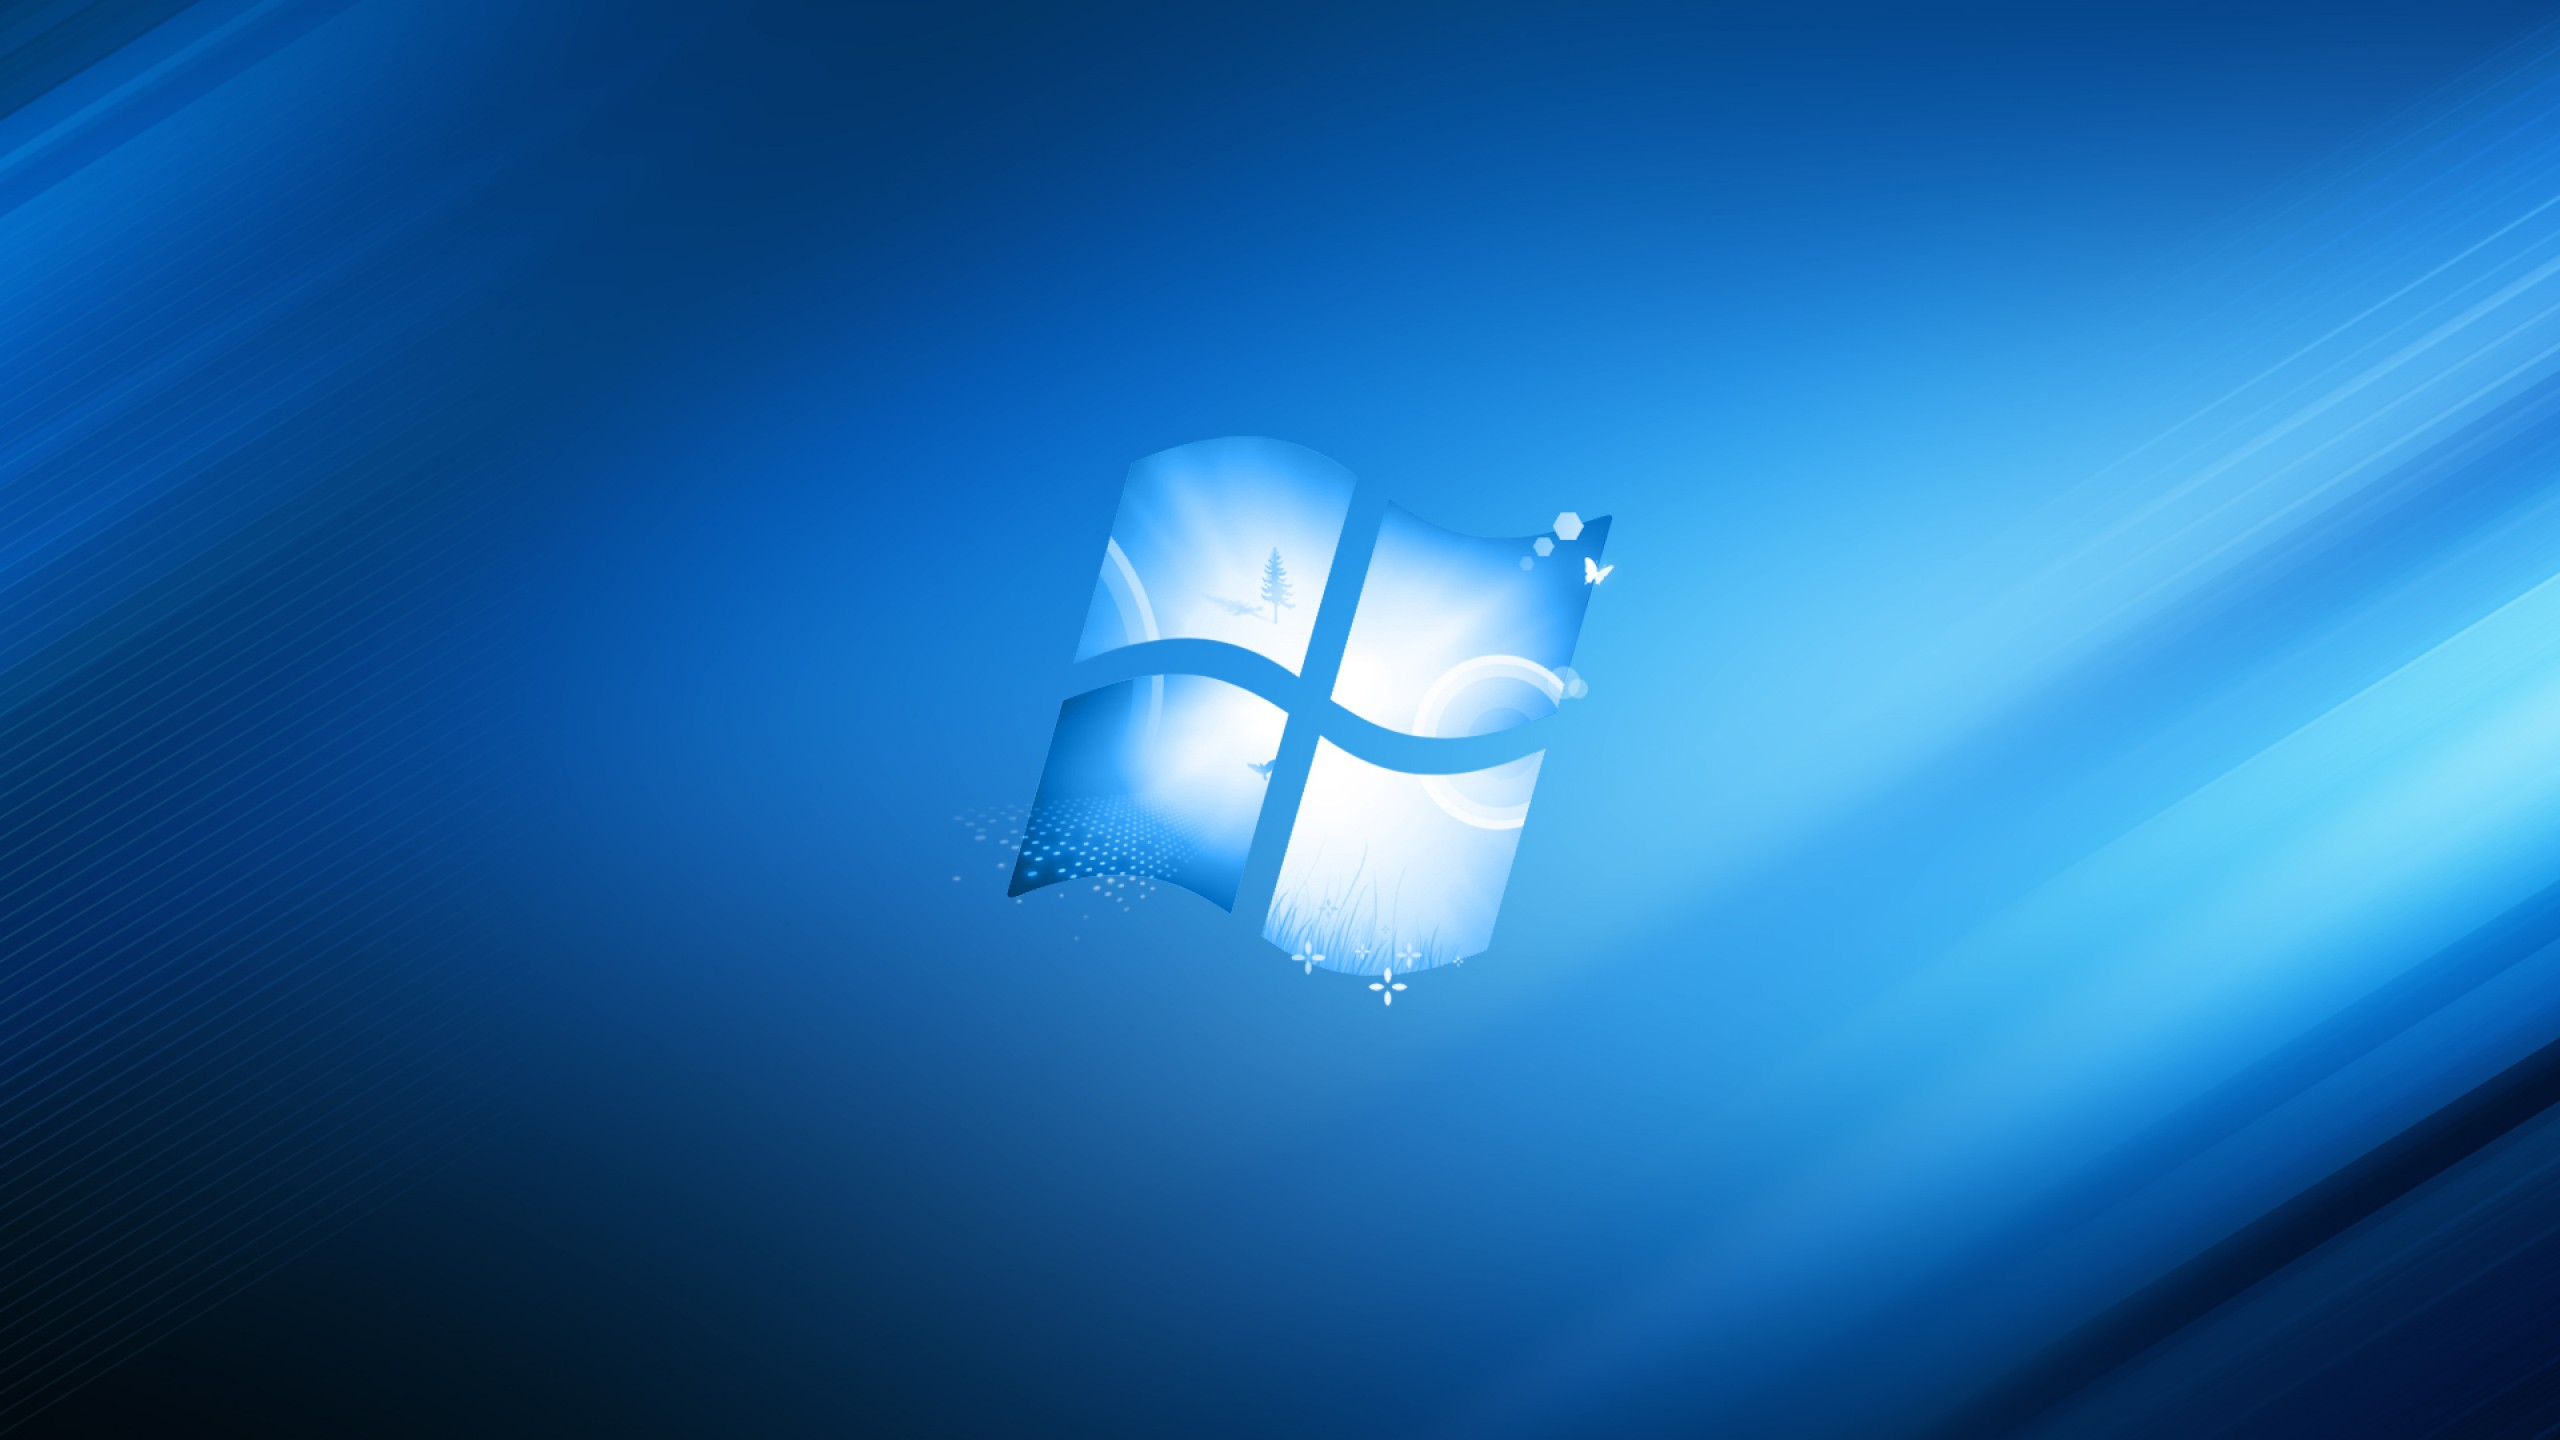 Cool windows 10 blue wallpaper 2560x1440   Wallpaper   Wallpaper Style 2560x1440